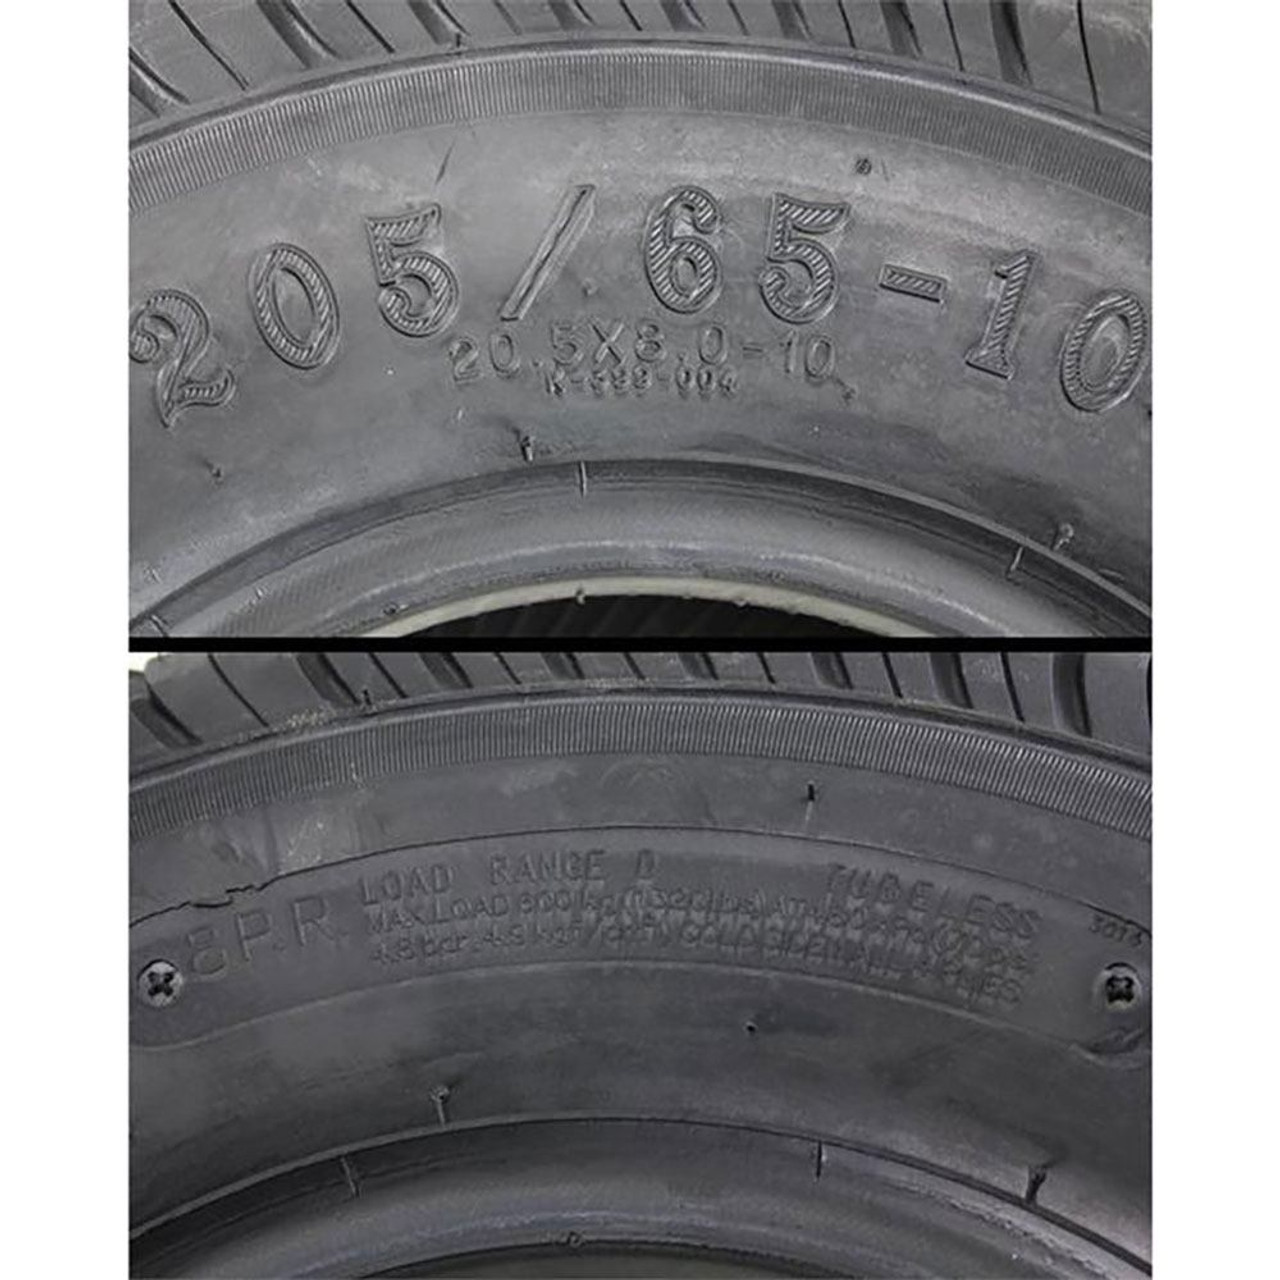 20.5X8.00-10 (205/65-10) Load Range D Bias Ply Trailer Tire - Kenda Loadstar